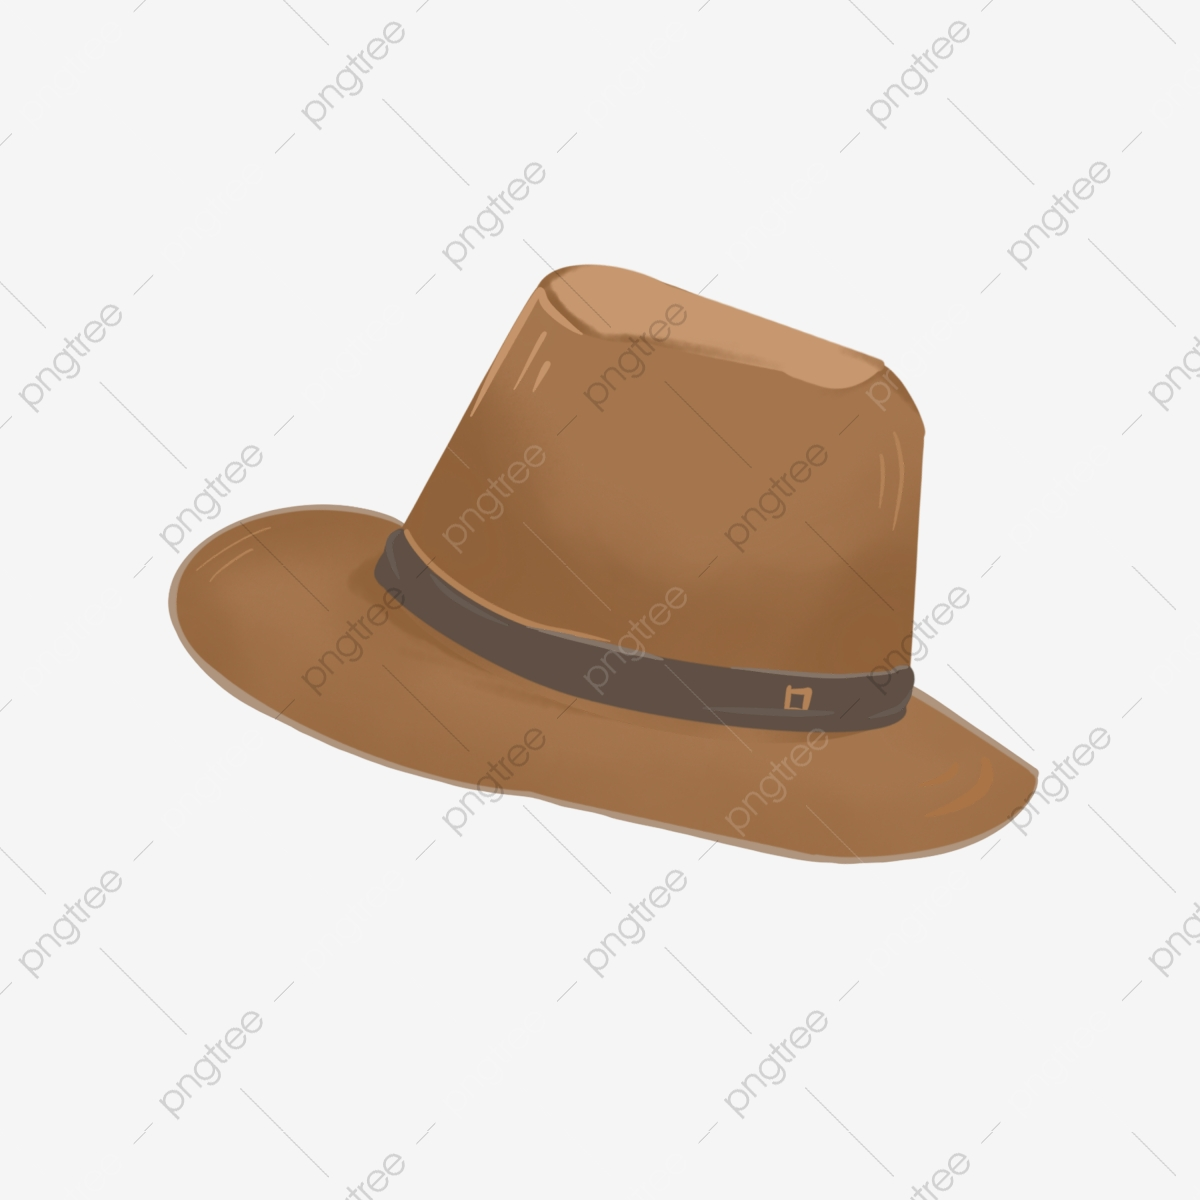 Cowboy Hat Png Images Vector And Psd Files Free Download On Pngtree Cowboy hat png clipart format: https pngtree com freepng cowboy hat cartoon illustration 4764298 html